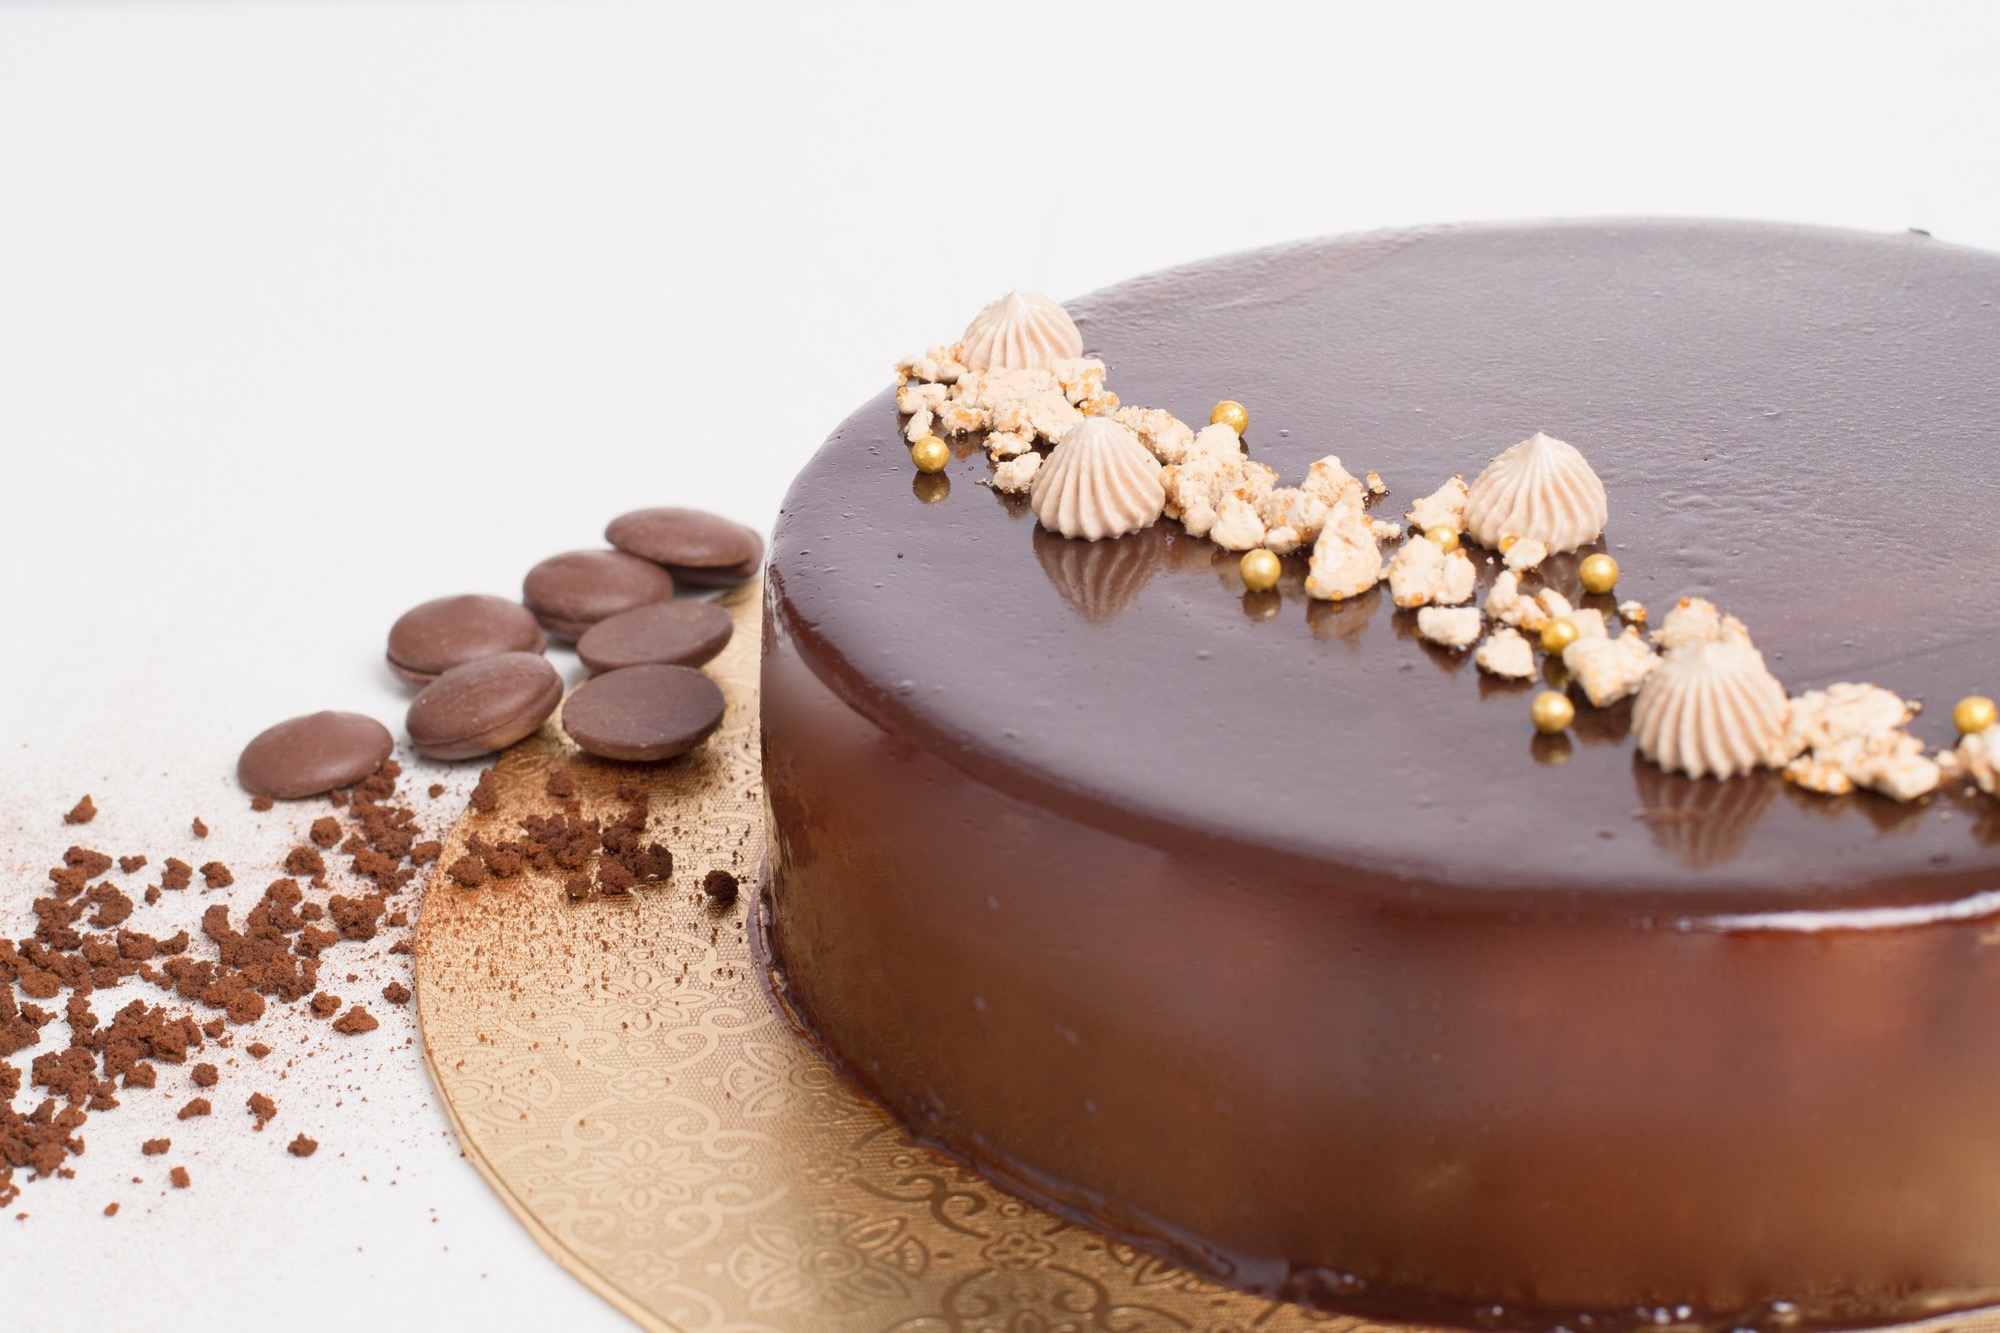 Mocha Entremet - Ø18 cm - Rp. 400.000,-Ø20 cm - Rp. 600.000,-Velvety chocolate mousse with coffee cremeux and almond dacquoise insert on top of crunchy cocoa streusel. A classic combination of coffee and chocolate with a modern twist. Garnished with miniature coffee meringues and dacquoise crumbles.